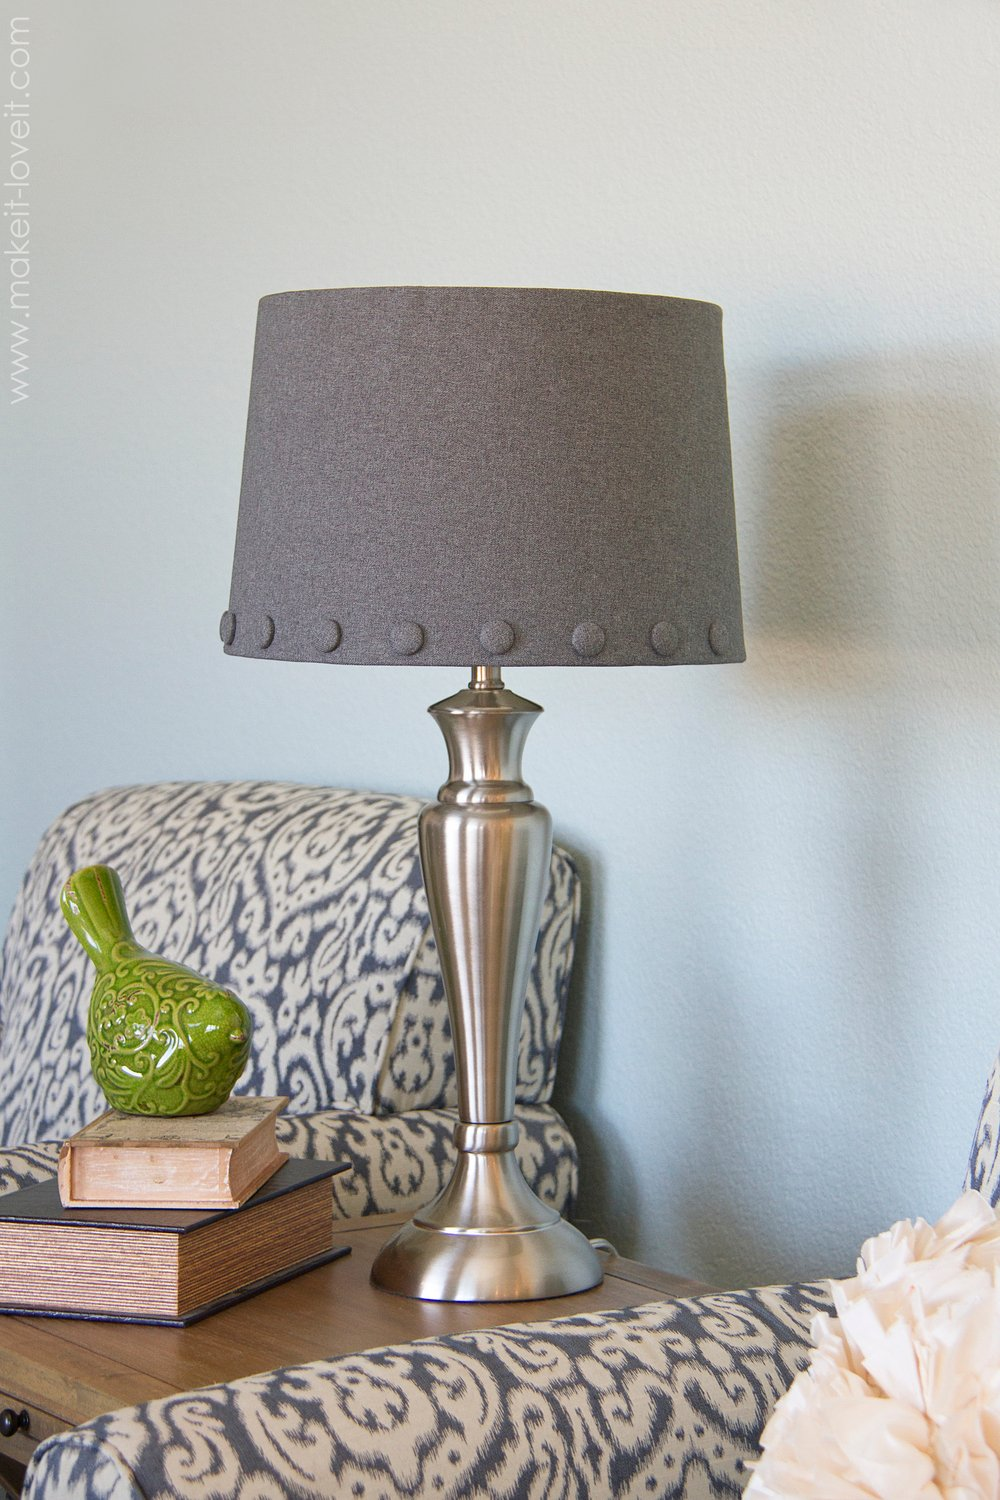 No Sew: Lamp Shade with Cover Buttons | Make It and Love It